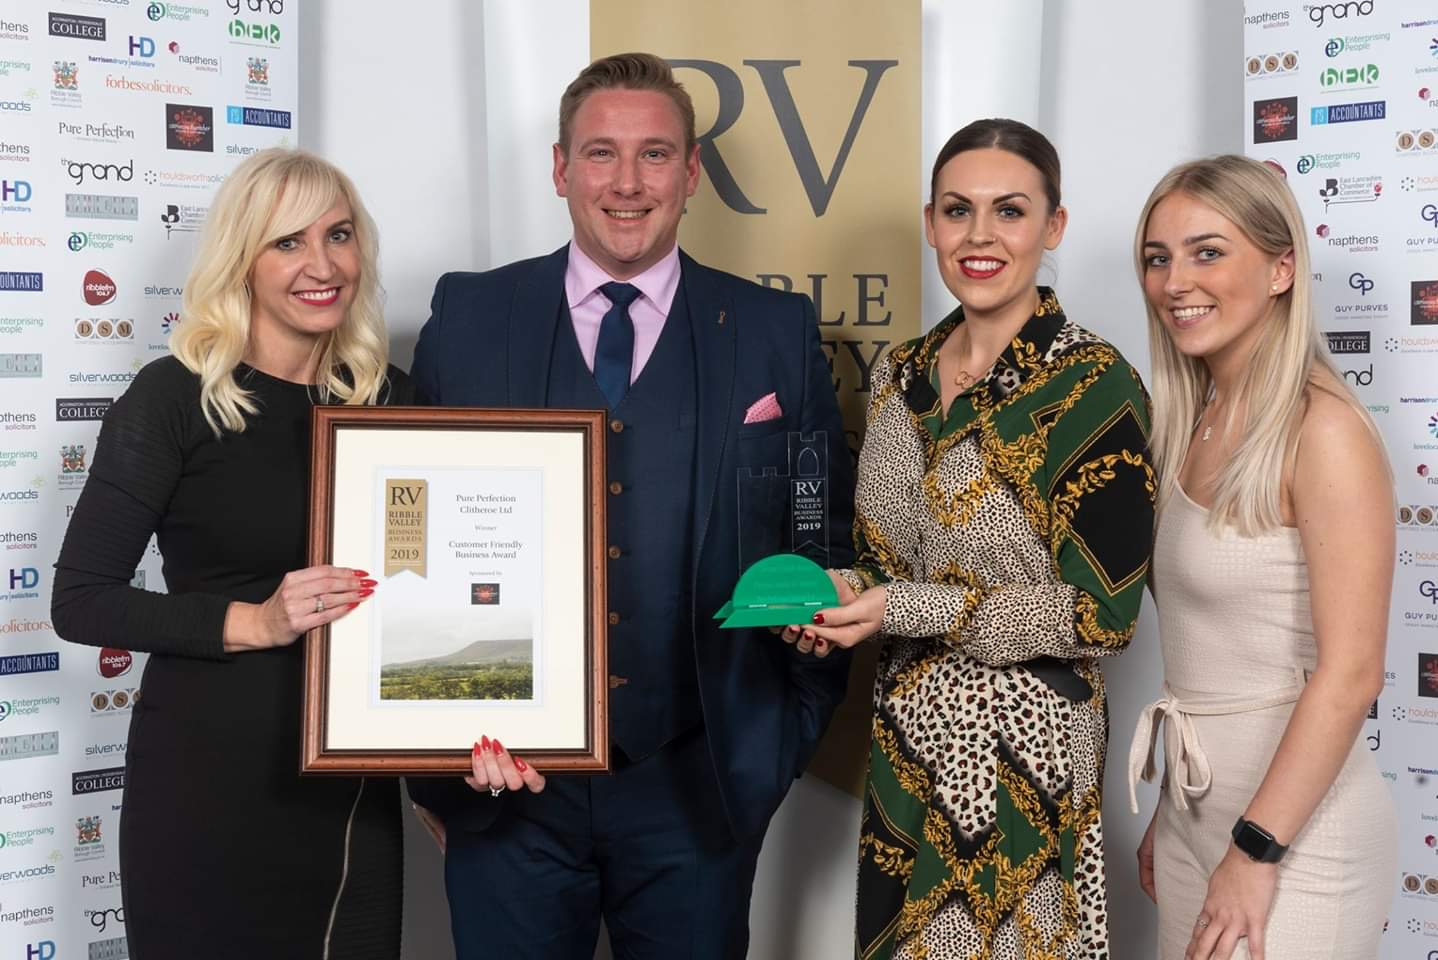 Pure Perfection Won at the Ribble Valley Business Awards 2019